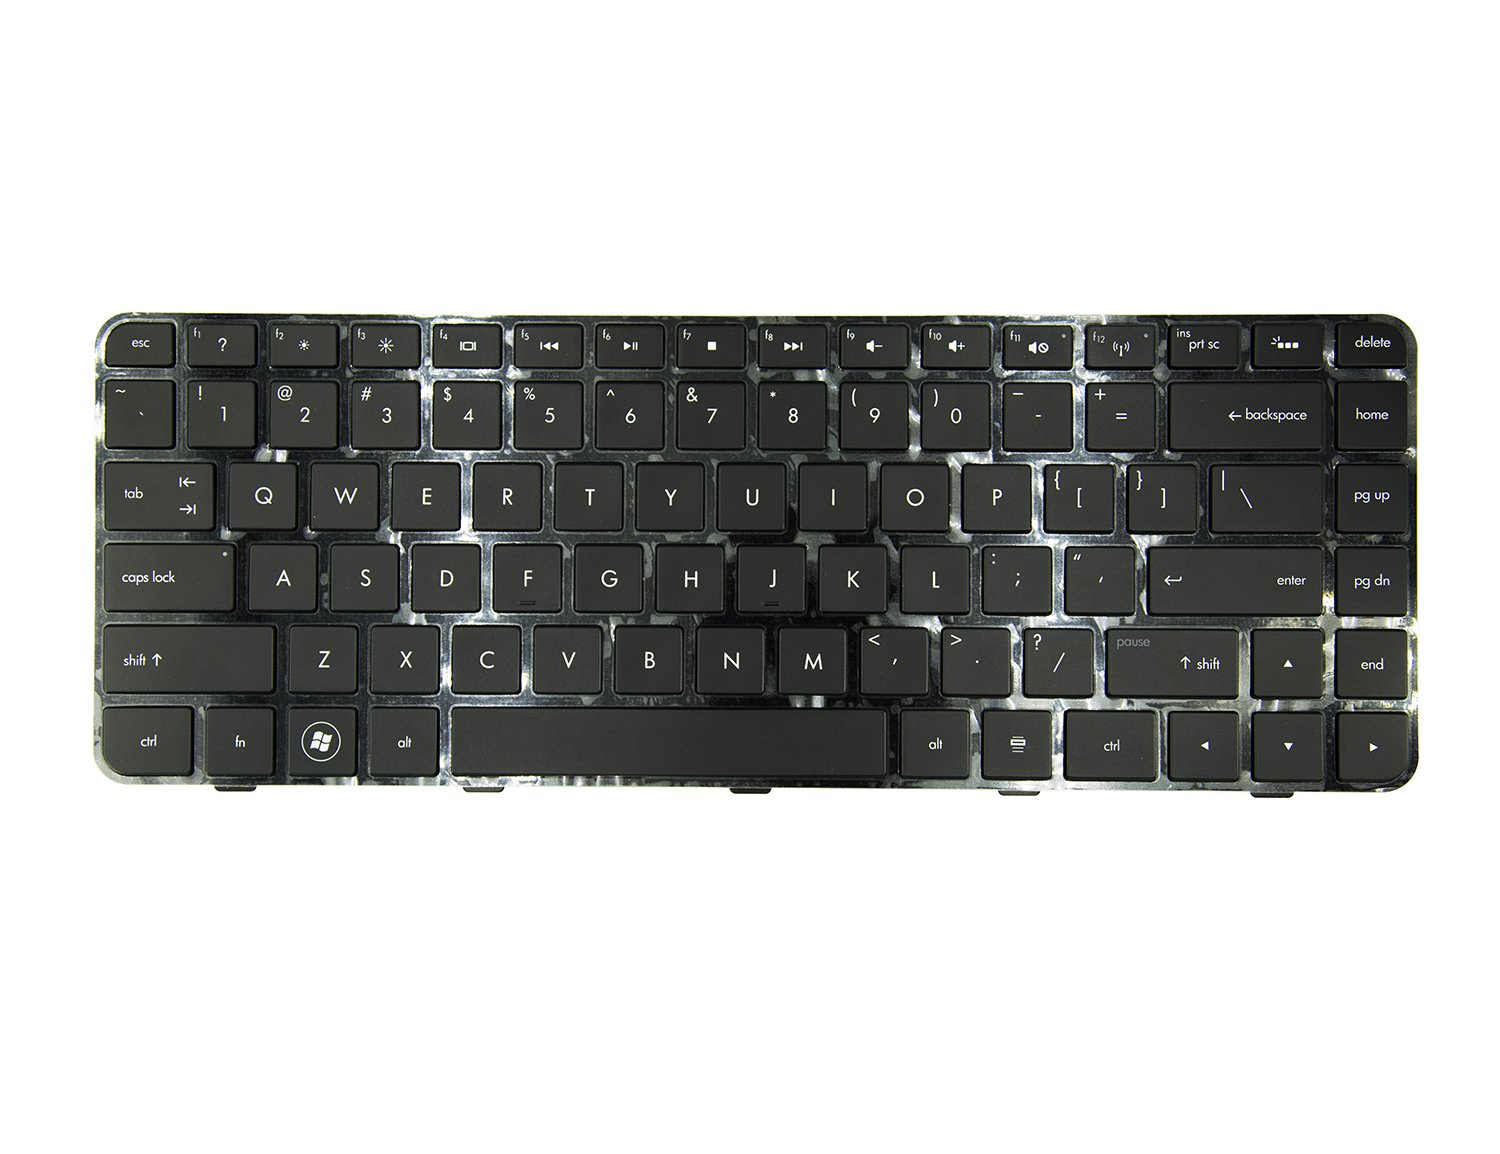 Laptop replacement Backlit keyboard for HP Pavilion dm4-1001tu dm4-1001tx  dm4-1002tu dm4-1003xx dm4-1004tu dm4-1004xx dm4-1018tx dm4-1060us dm4-1062nr  ...